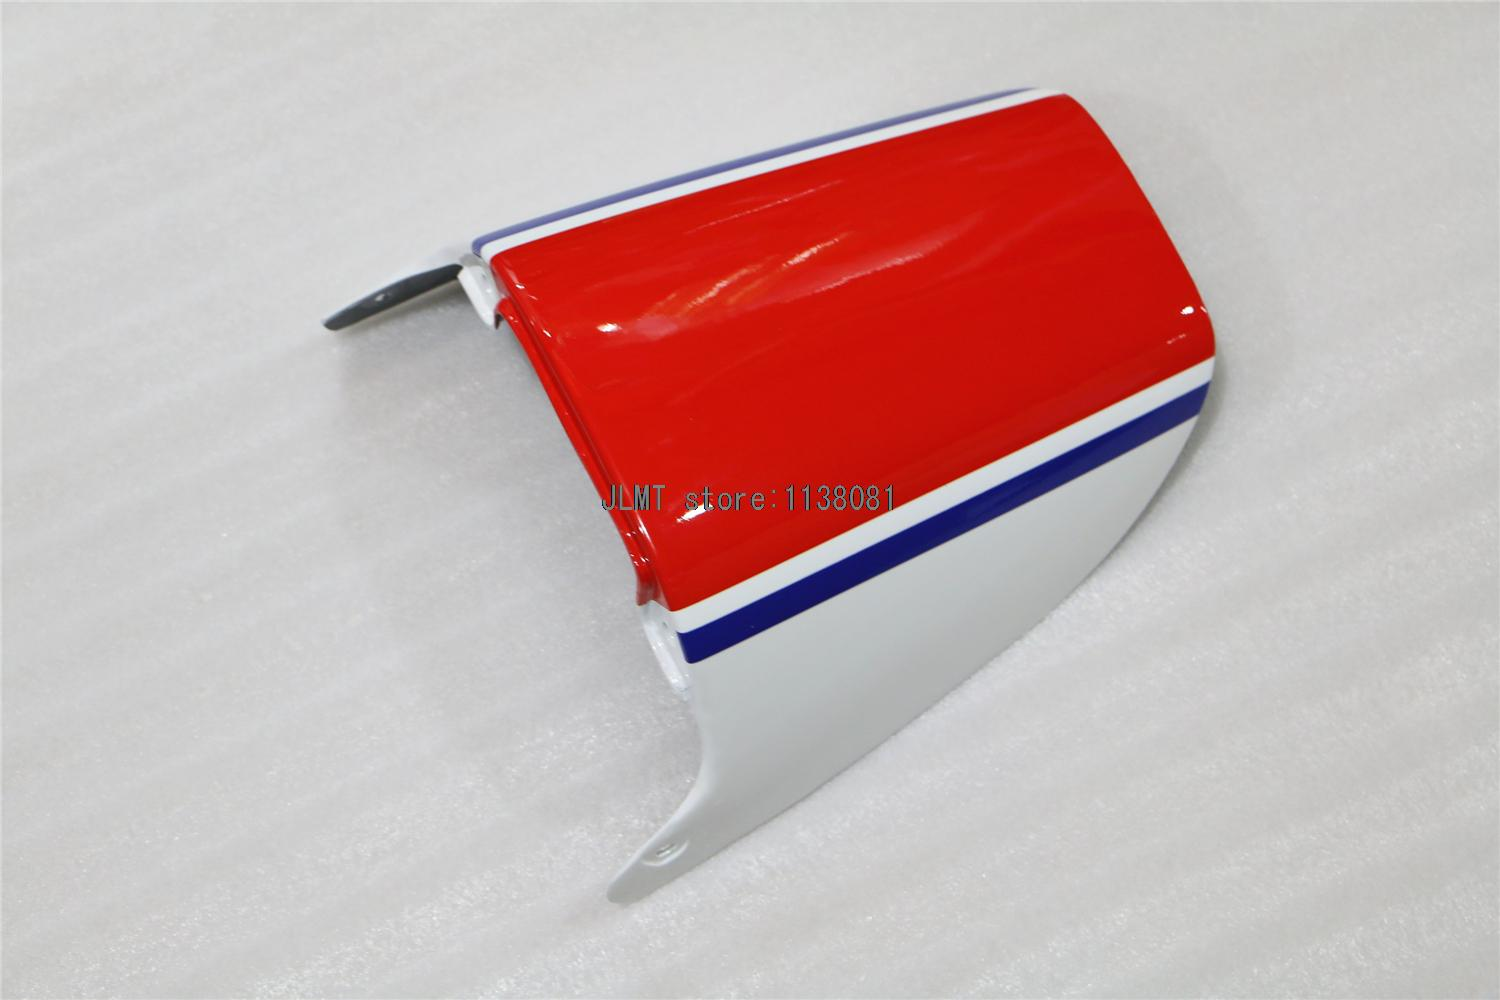 Fairing Rear Cowl Seat Cover RZV RD 400 500 1985 - 1987 1986  Compression Bodywork for Yamaha RD400 RD500 85 86 87 RZV400 RZV500